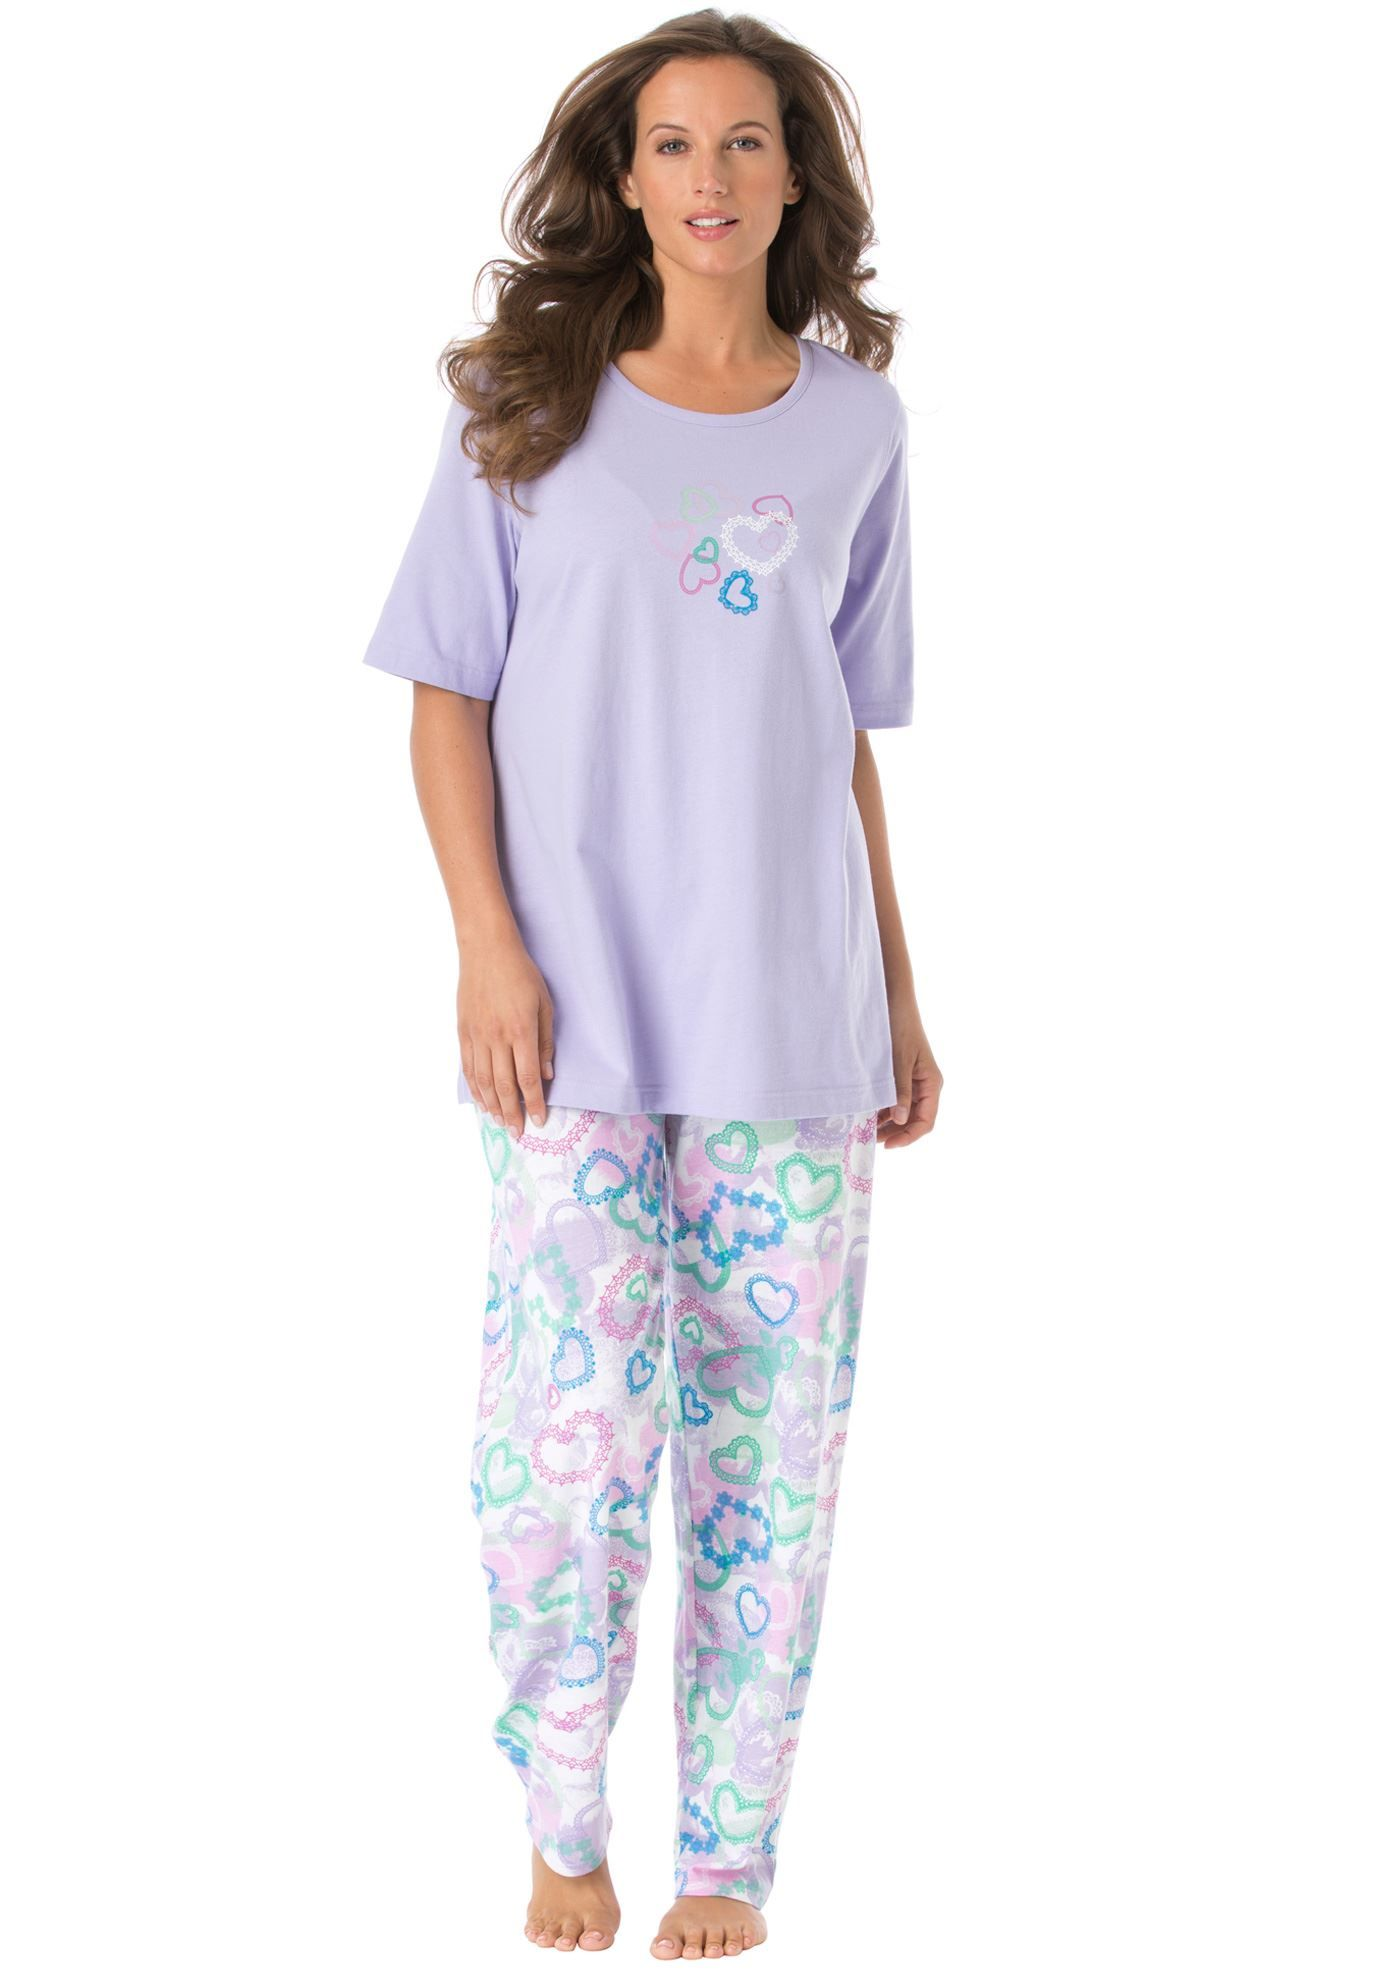 Cotton Knit Pajamas By Dreams Co Plus Size Fashion From Woman Within Fashionable Plus Size Clothing Plus Size Outfits Plus Size Fashion